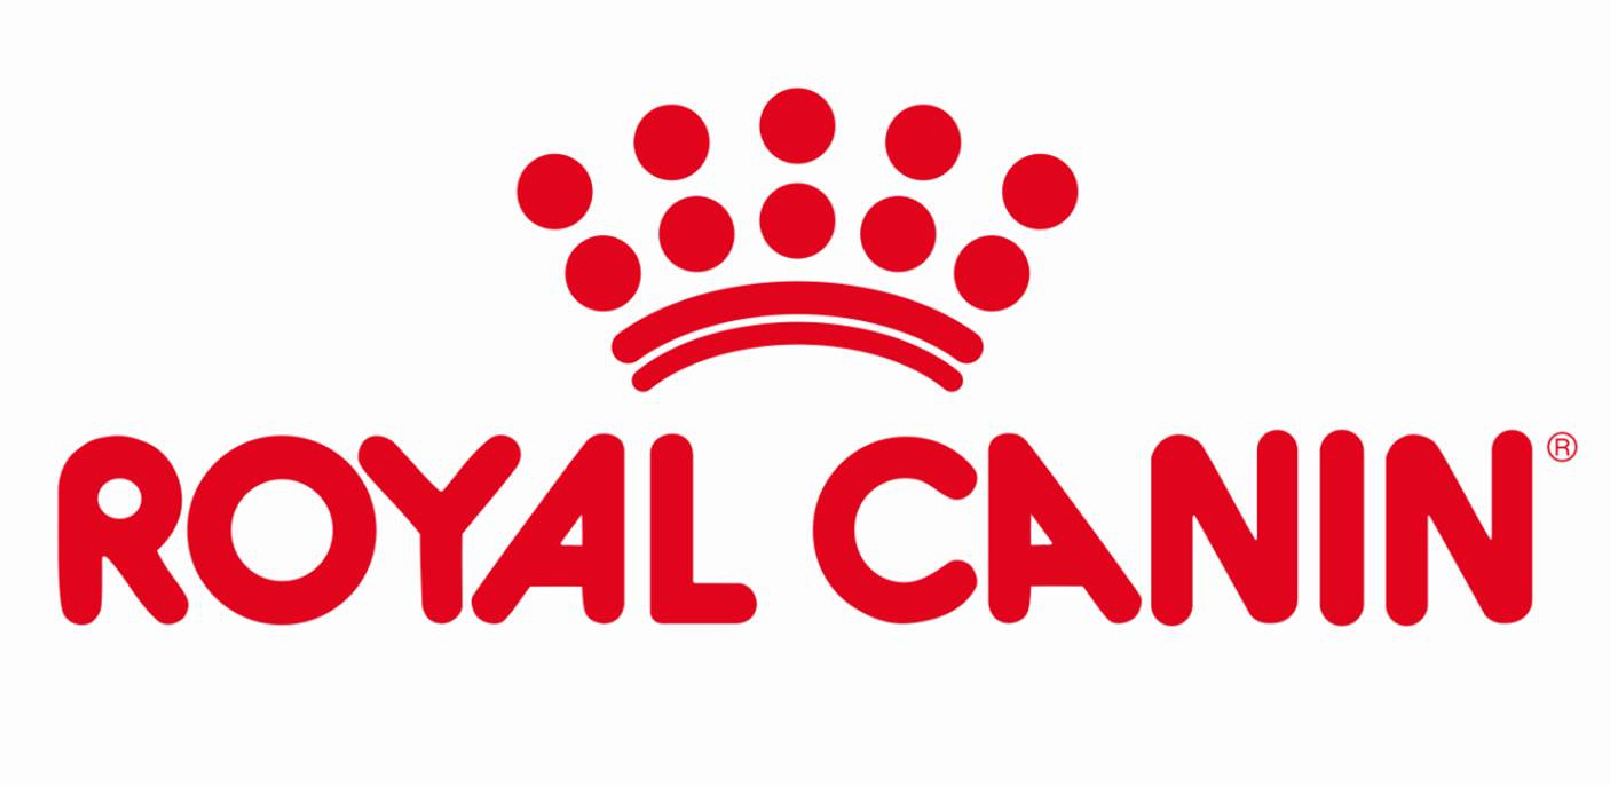 ROYAL CANIN CANADA - Booth #205